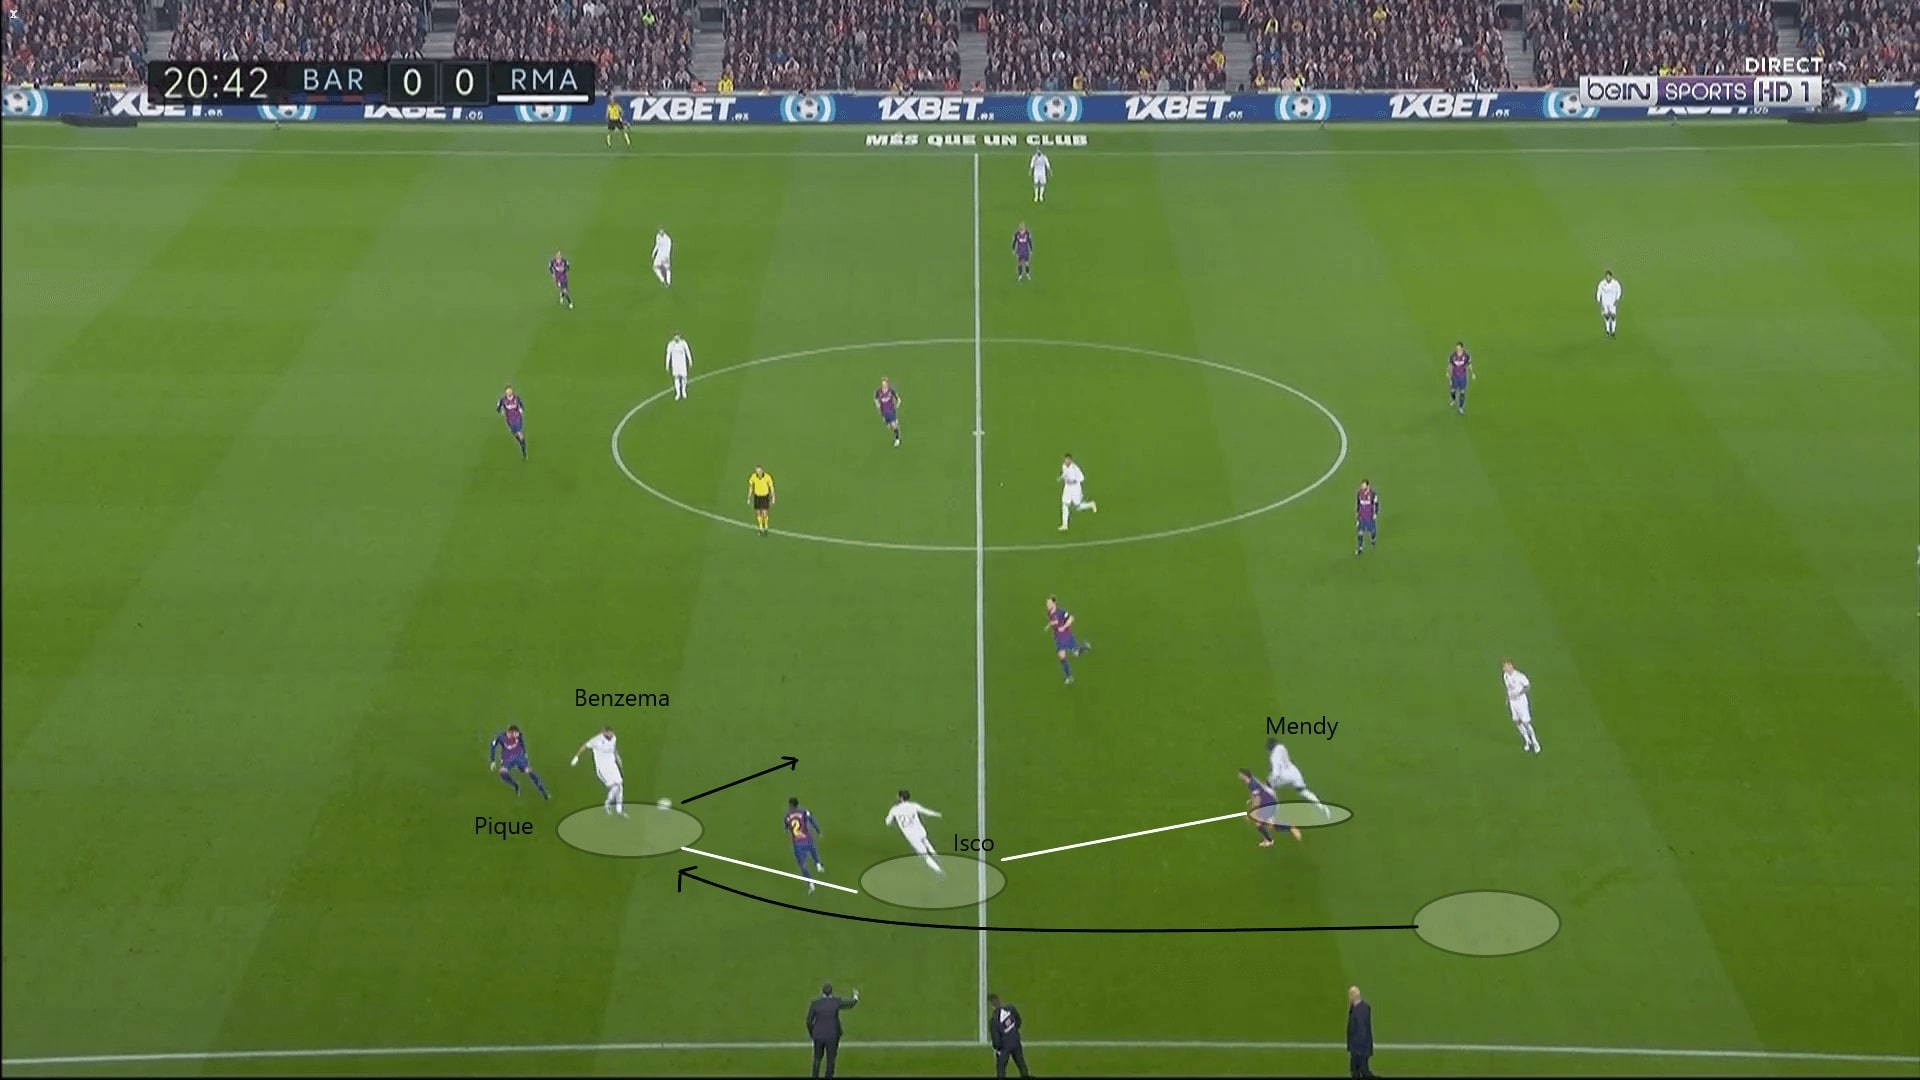 UEFA Champions League 2019/20: Real Madrid vs Manchester City - tactical preview on how can Madrid attack flanks tactics